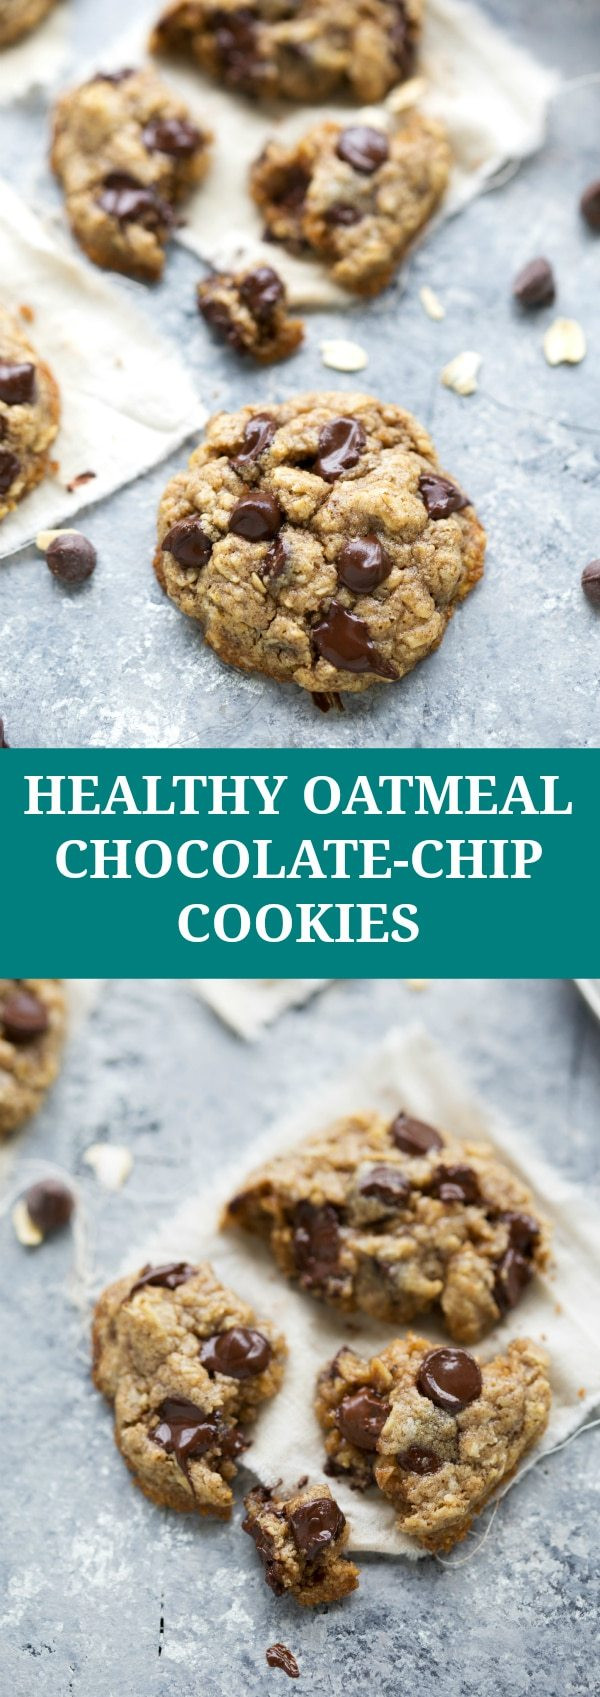 Chocolate Oatmeal Cookies Healthy  The BEST healthy oatmeal chocolate chip cookies Chelsea